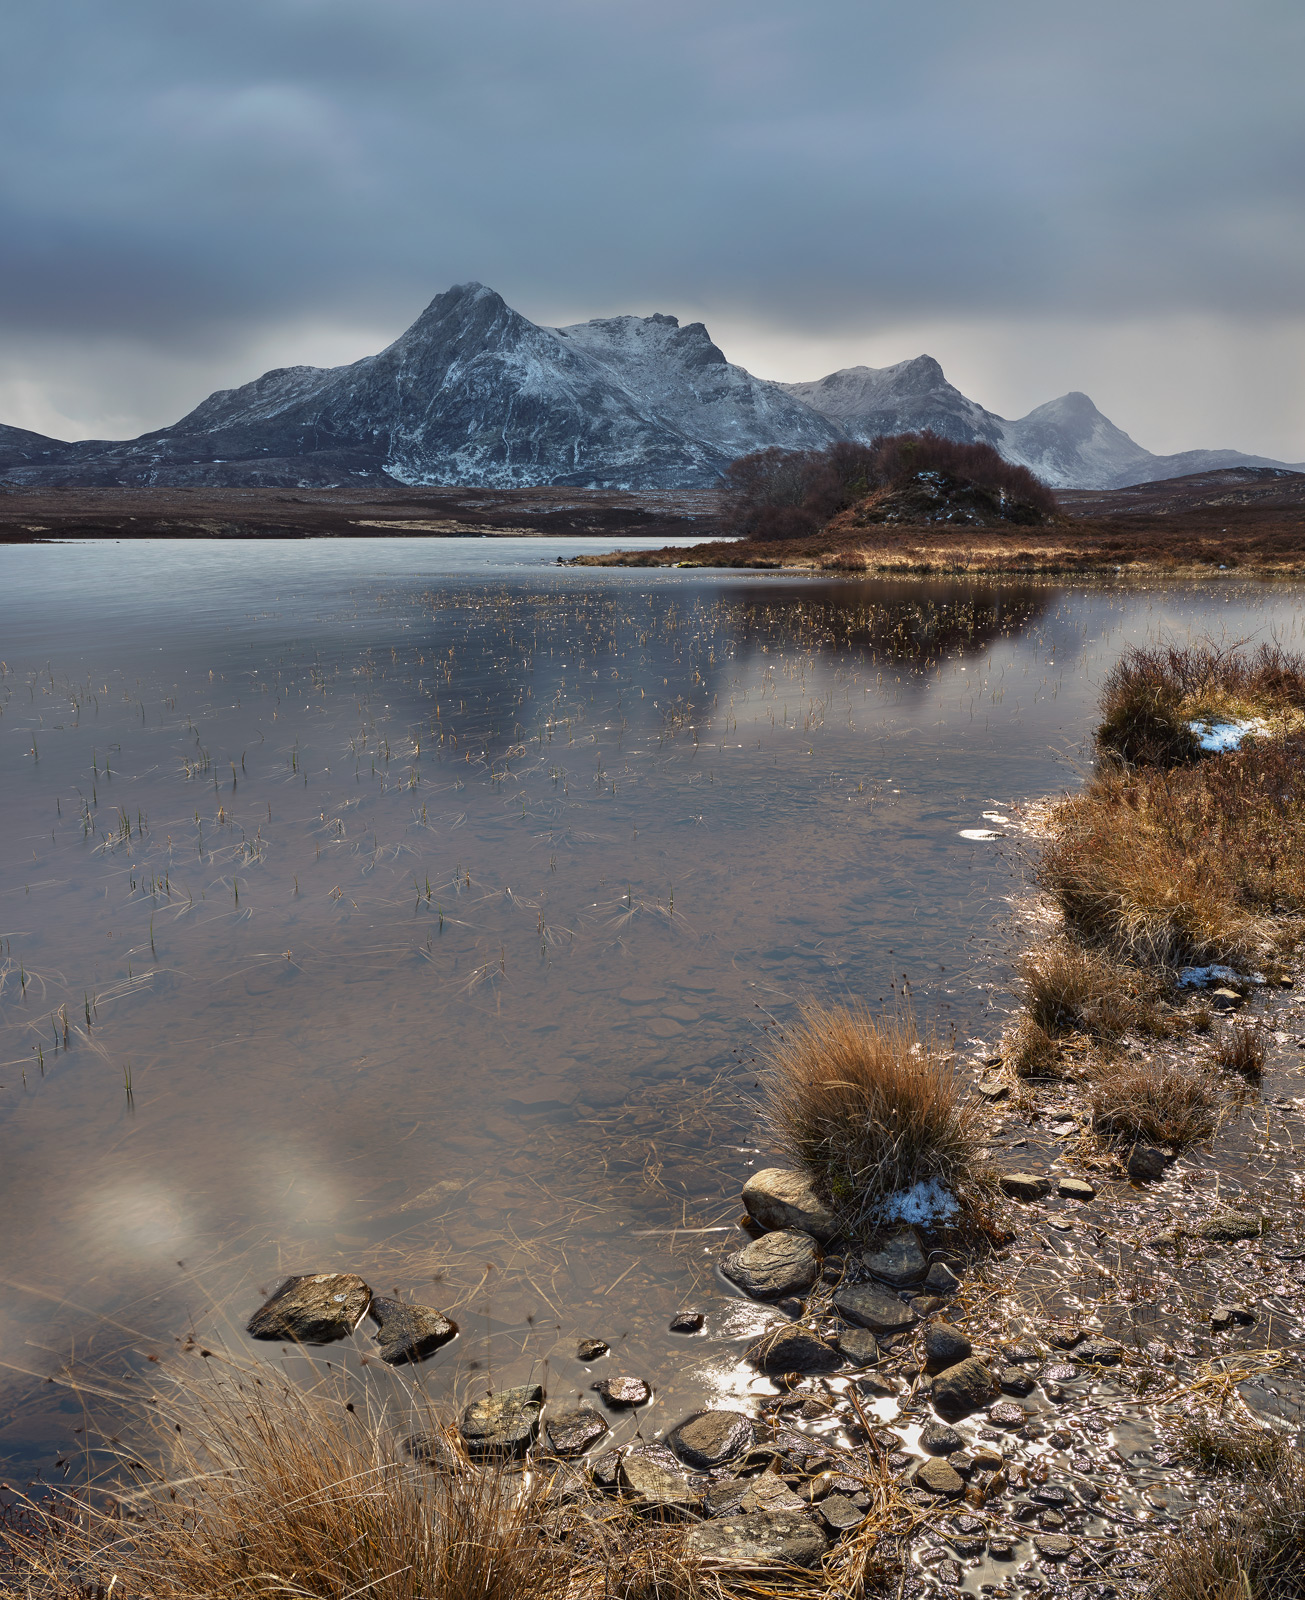 A passing deluge of snow and hail marches onward to Ben Loyal before reverting back to brilliant sunshine as it paints the immediate foreshore.